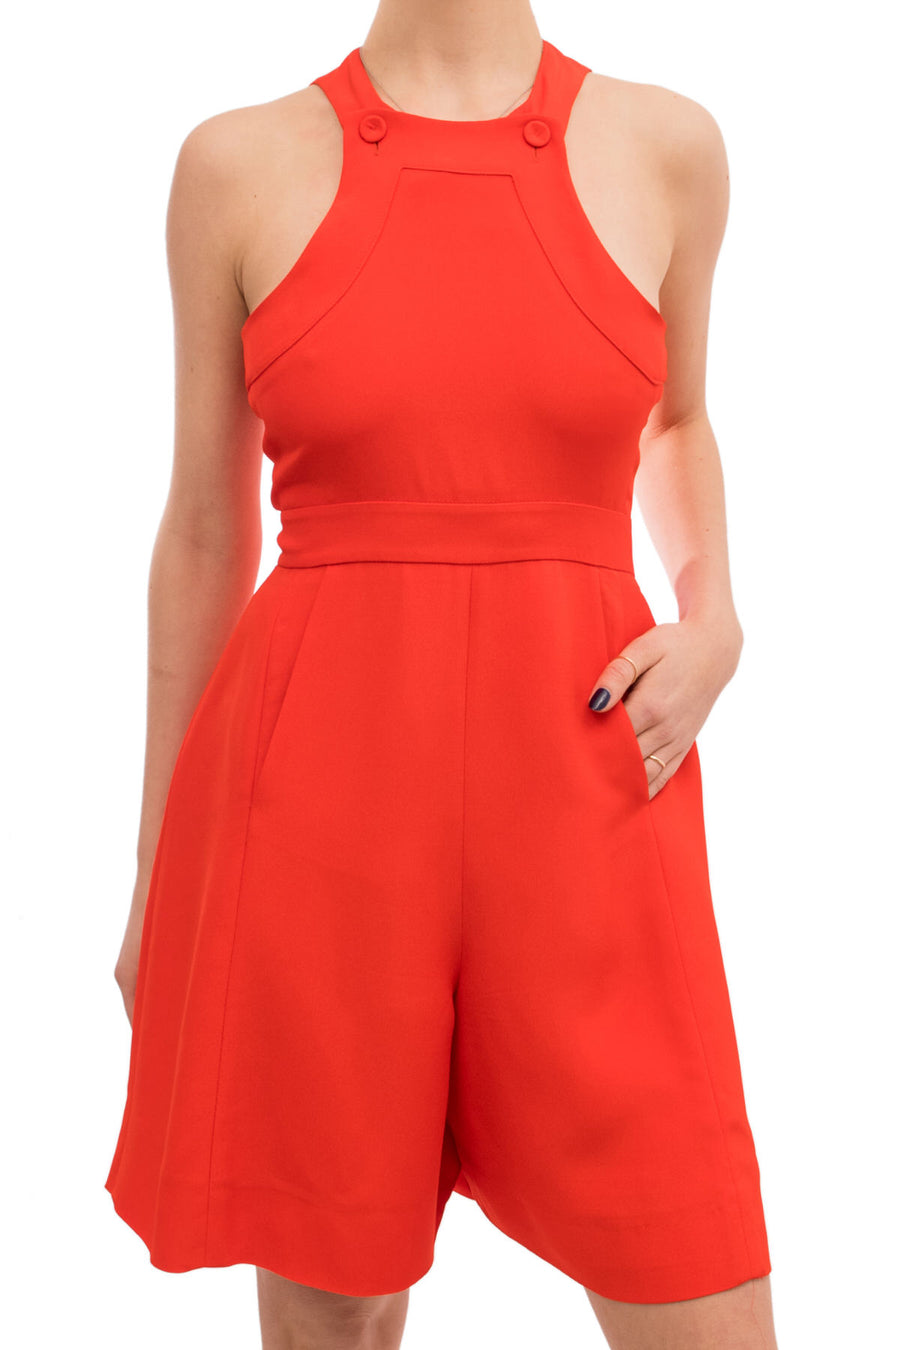 Fendi Orange Shorts Jumpsuit